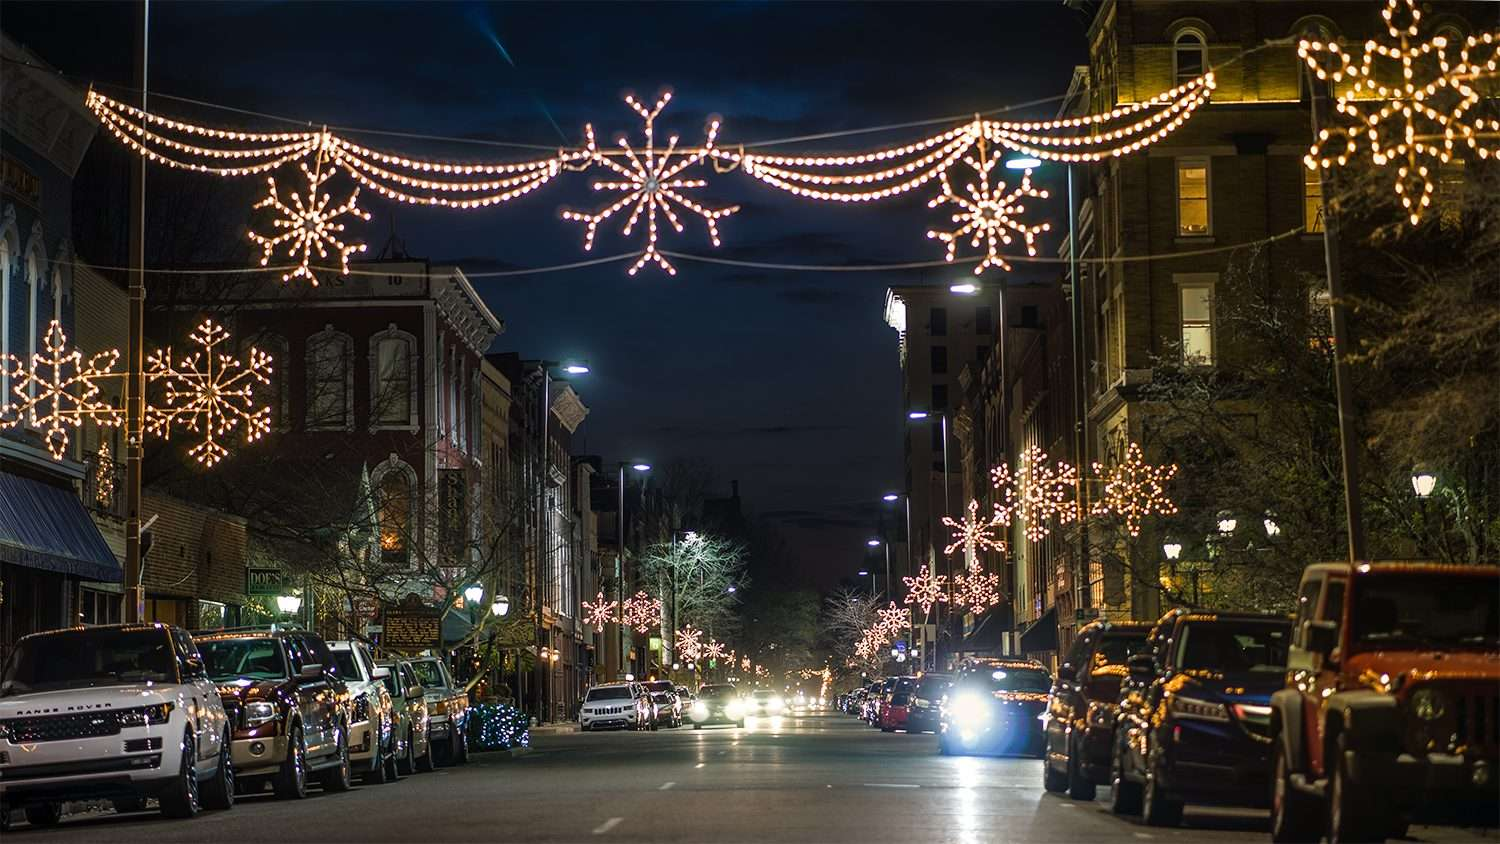 Dec 15, 2017 - Christmas lights overhead along Broadway Main Street historic downtown Paducah, KY/photonews247.com